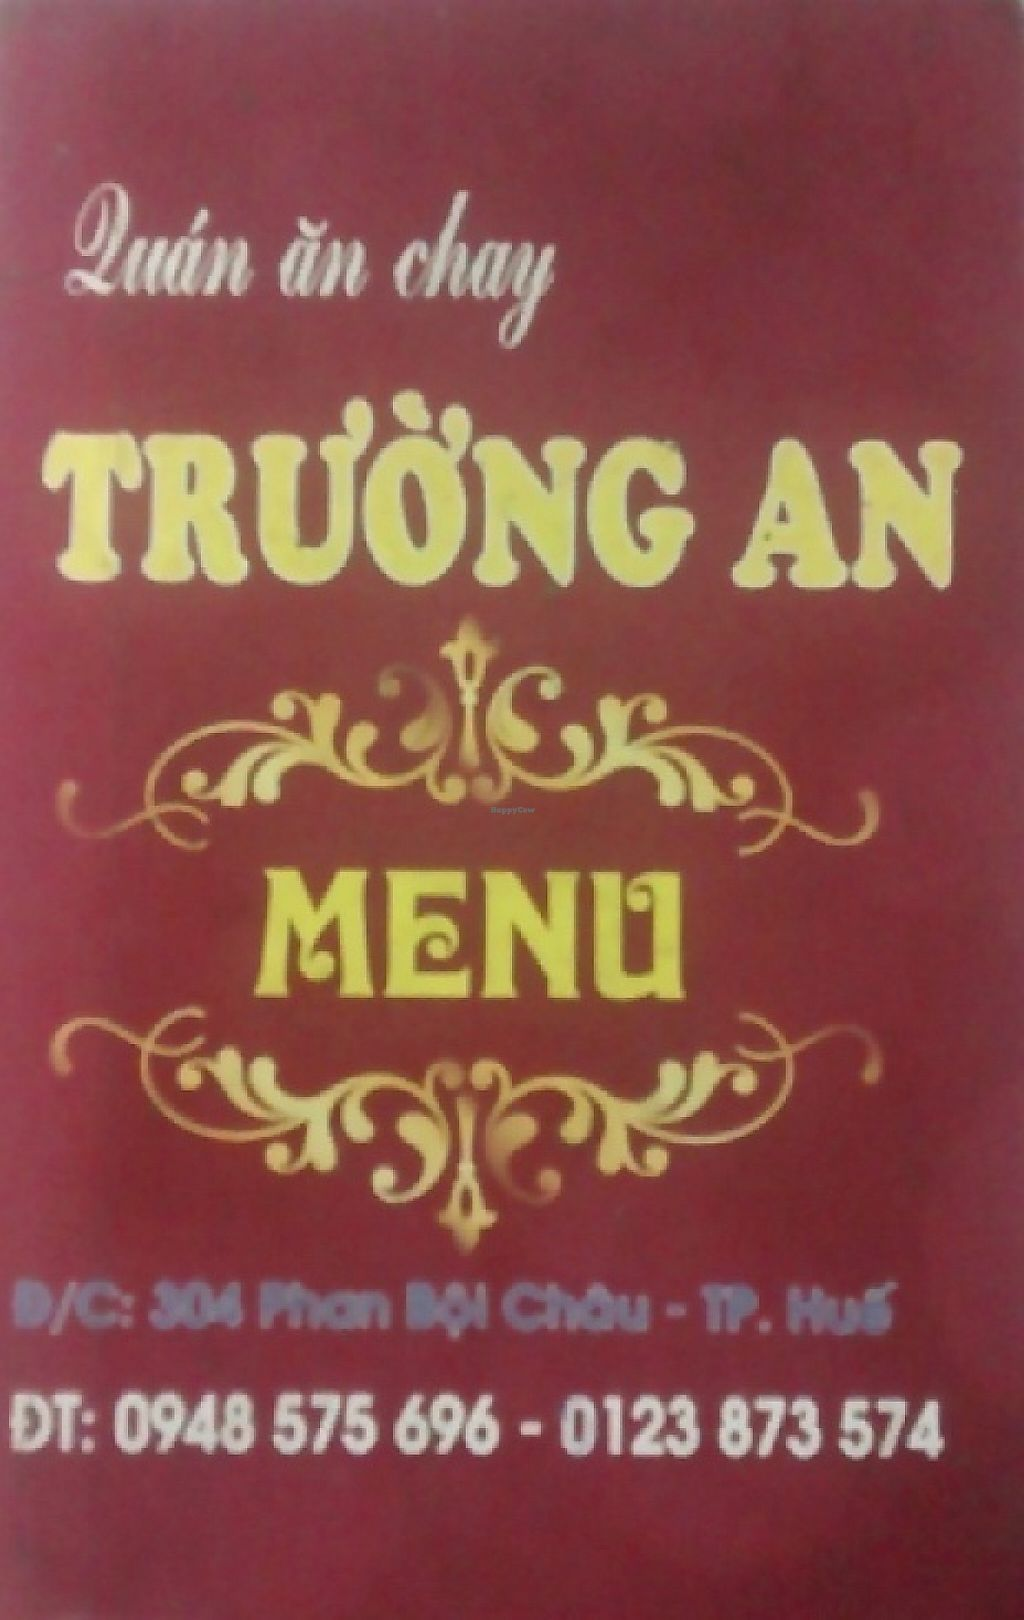 """Photo of Truong An  by <a href=""""/members/profile/Canamon"""">Canamon</a> <br/>front of menu <br/> May 5, 2017  - <a href='/contact/abuse/image/91557/255733'>Report</a>"""